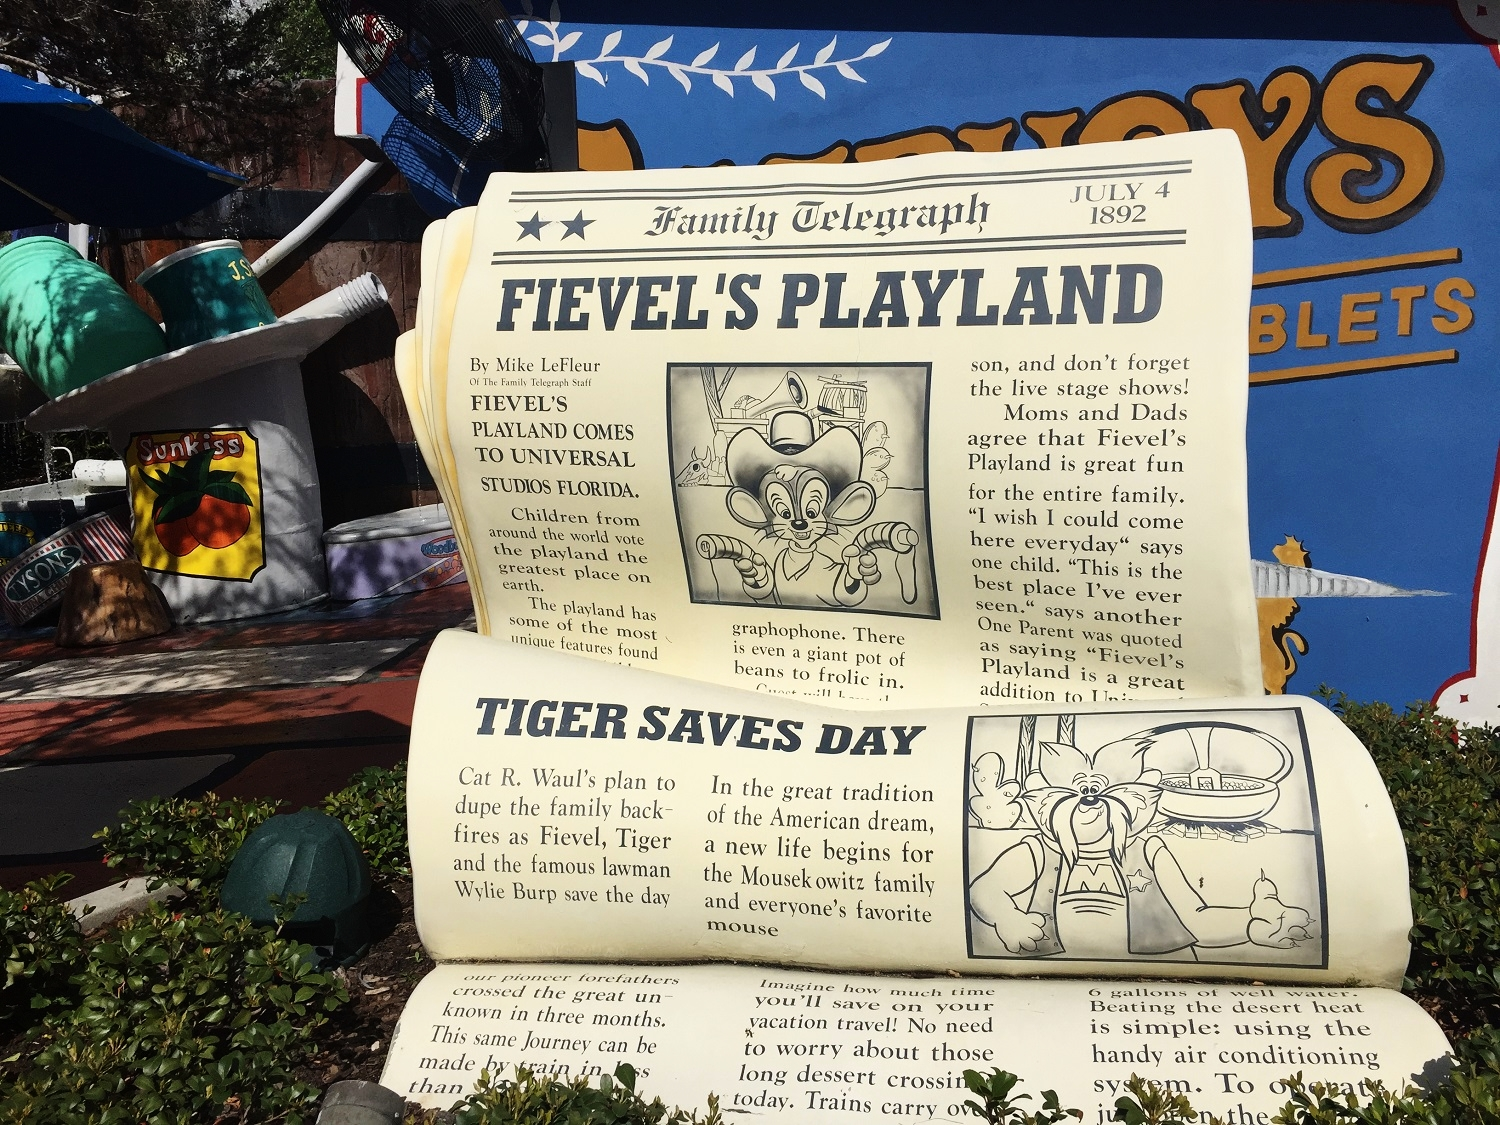 Fievel's Playland - Play Area